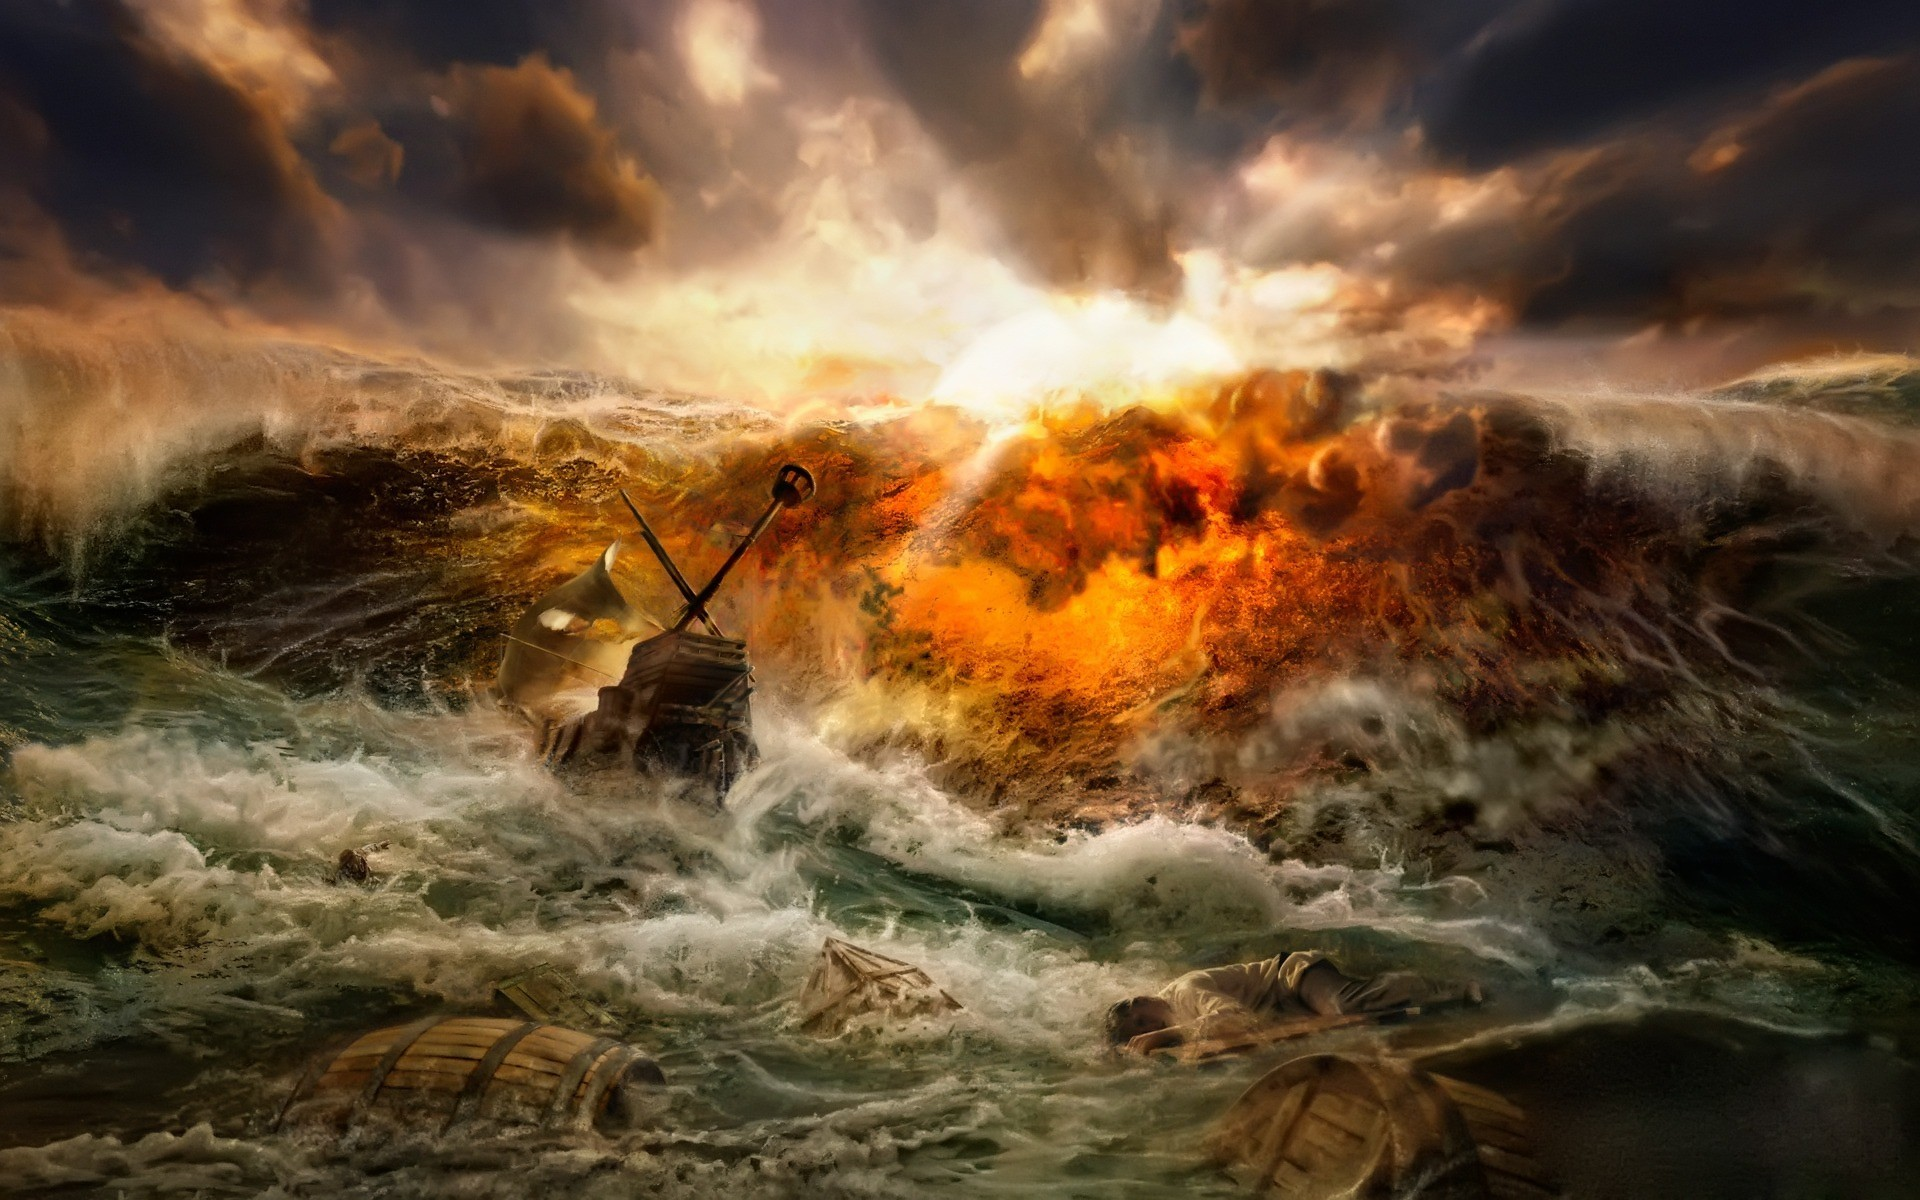 Res: 1920x1200, Shipwreck Wallpaper Miscellaneous Other Wallpapers